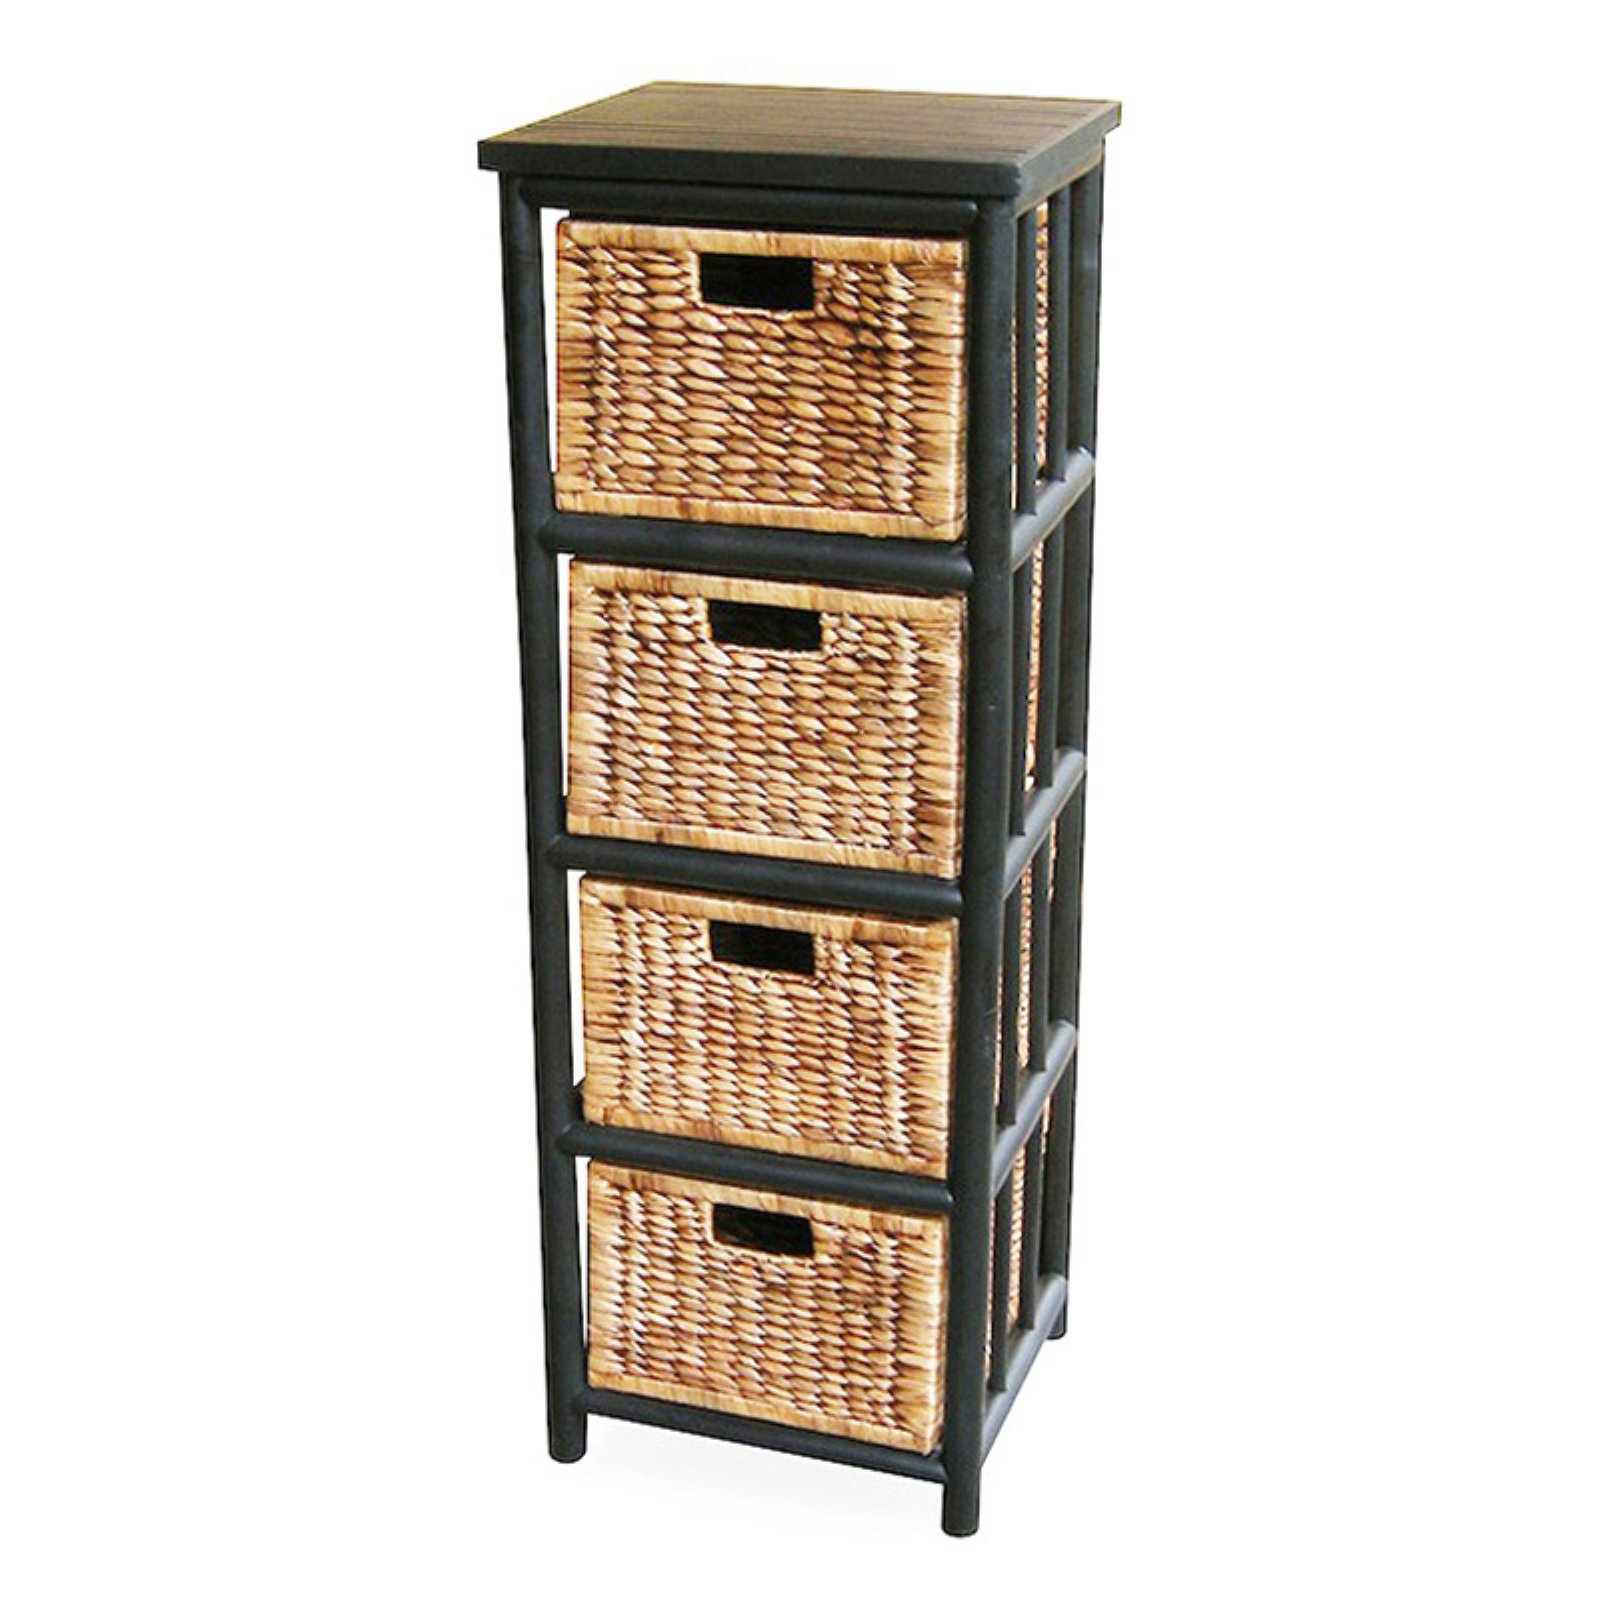 Heather Ann Creations Kona 4 Drawer Open Sided Bamboo Storage Cabinet